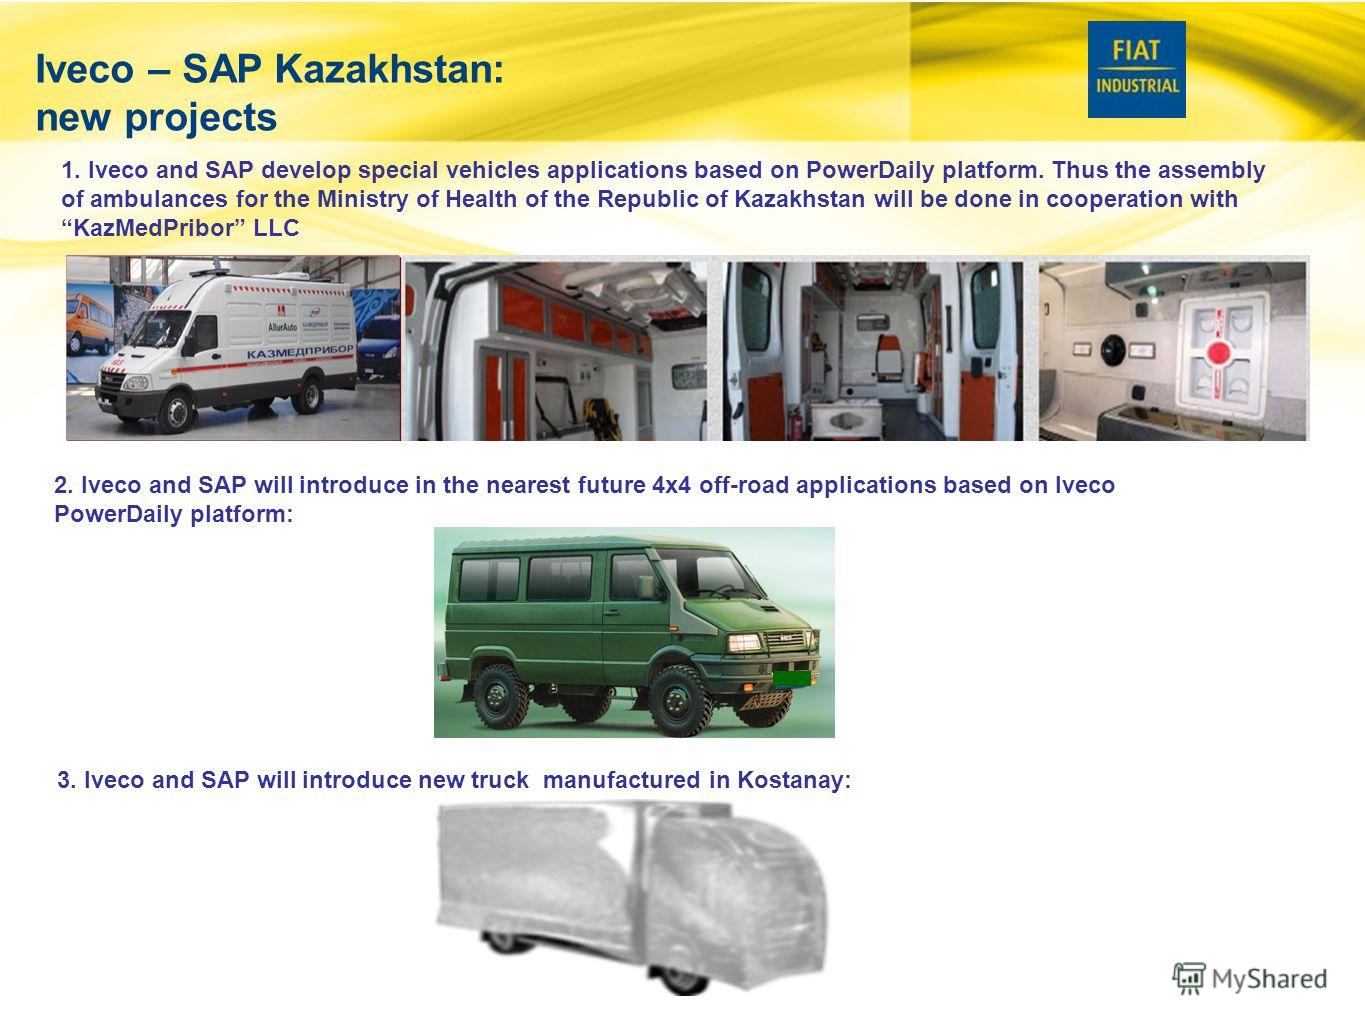 10 Iveco – SAP Kazakhstan: new projects 1. Iveco and SAP develop special vehicles applications based on PowerDaily platform. Thus the assembly of ambulances for the Ministry of Health of the Republic of Kazakhstan will be done in cooperation with Kaz